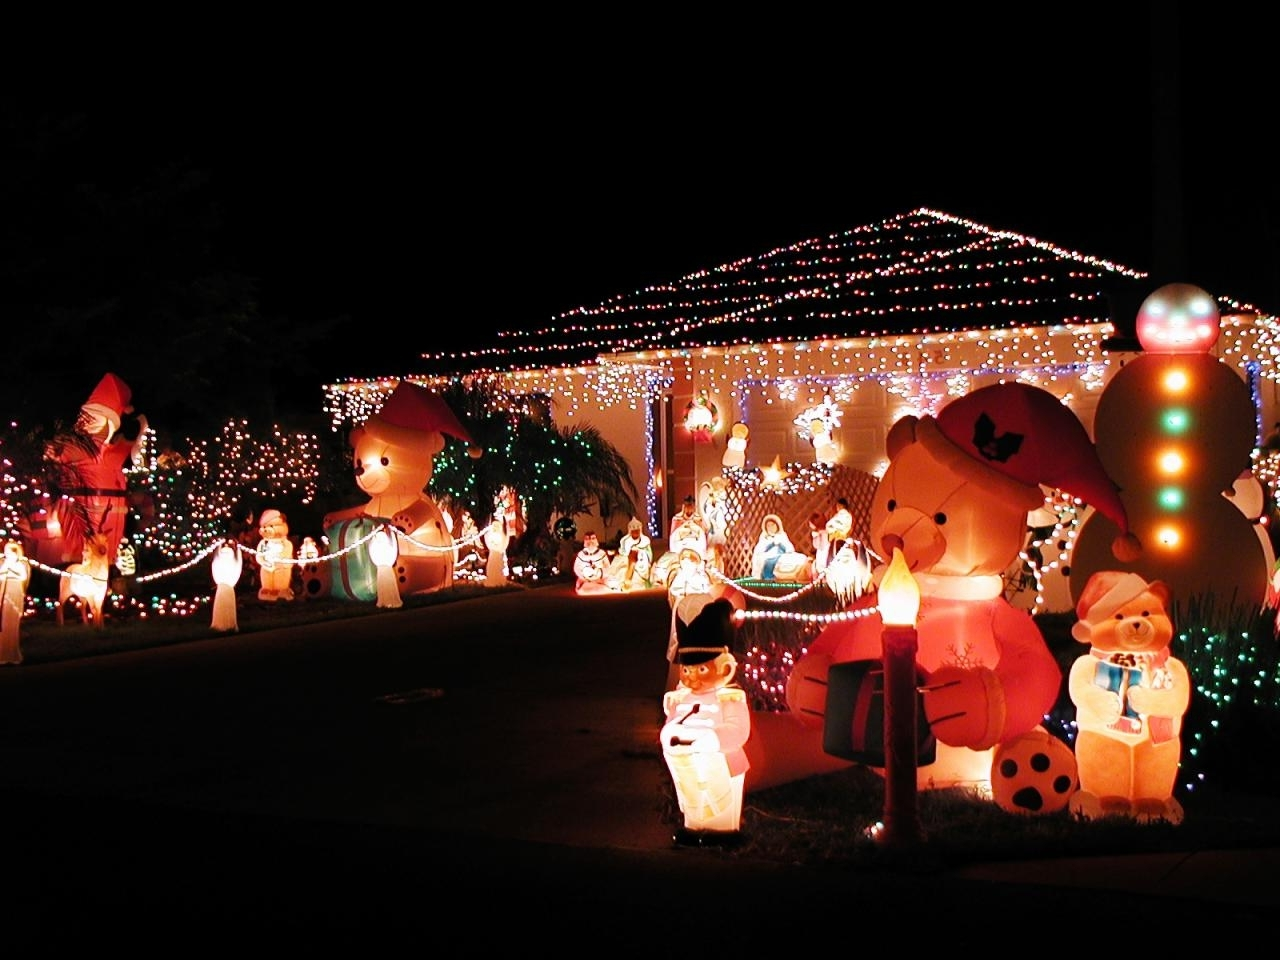 Outdoor Hanging Xmas Lights Within Well Known Christmas Lighting Displays With A Theme (View 8 of 20)